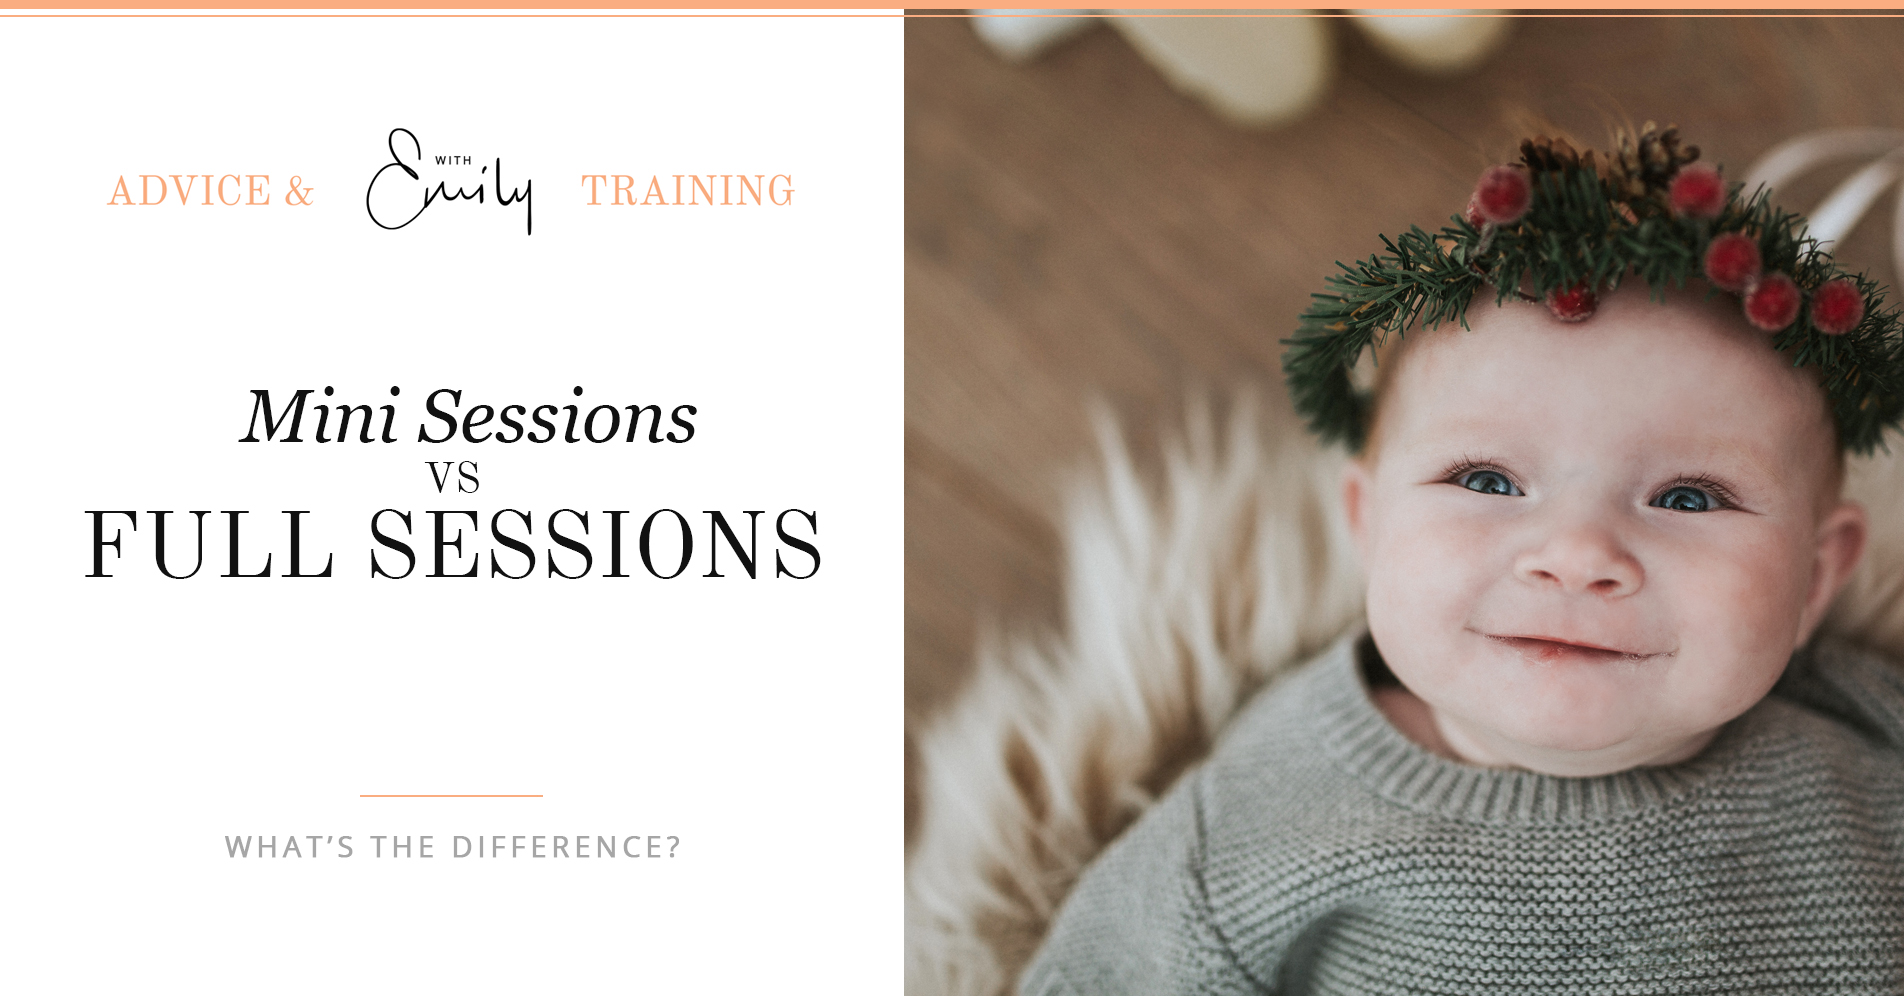 Mini Sessions vs Full Sessions - What's the difference?